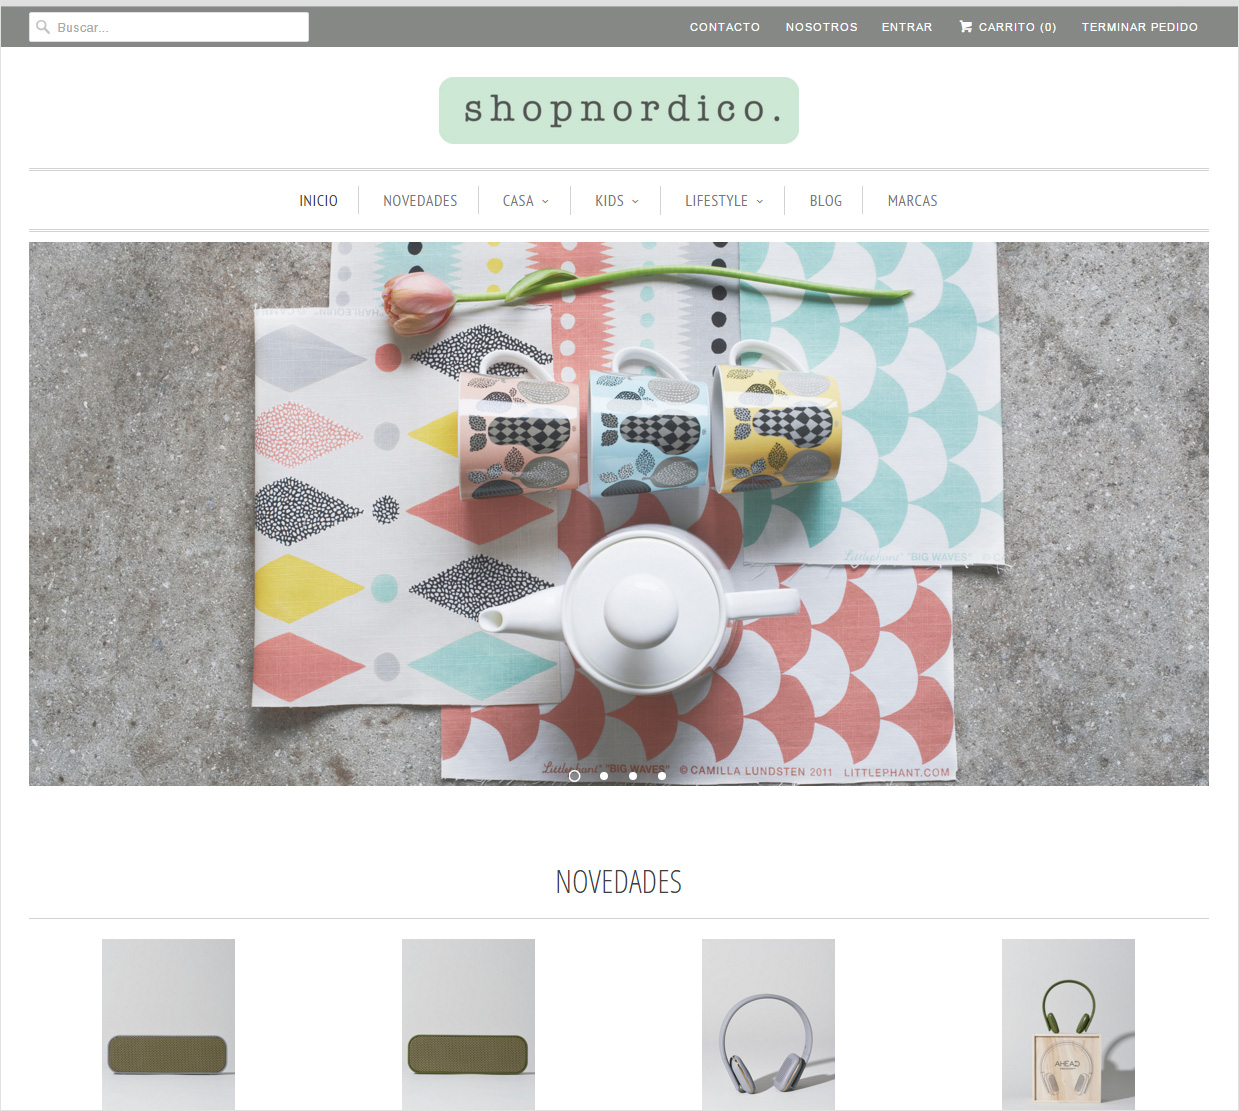 Chill decoraci n shopnordico la tienda online de for Webs decoracion online